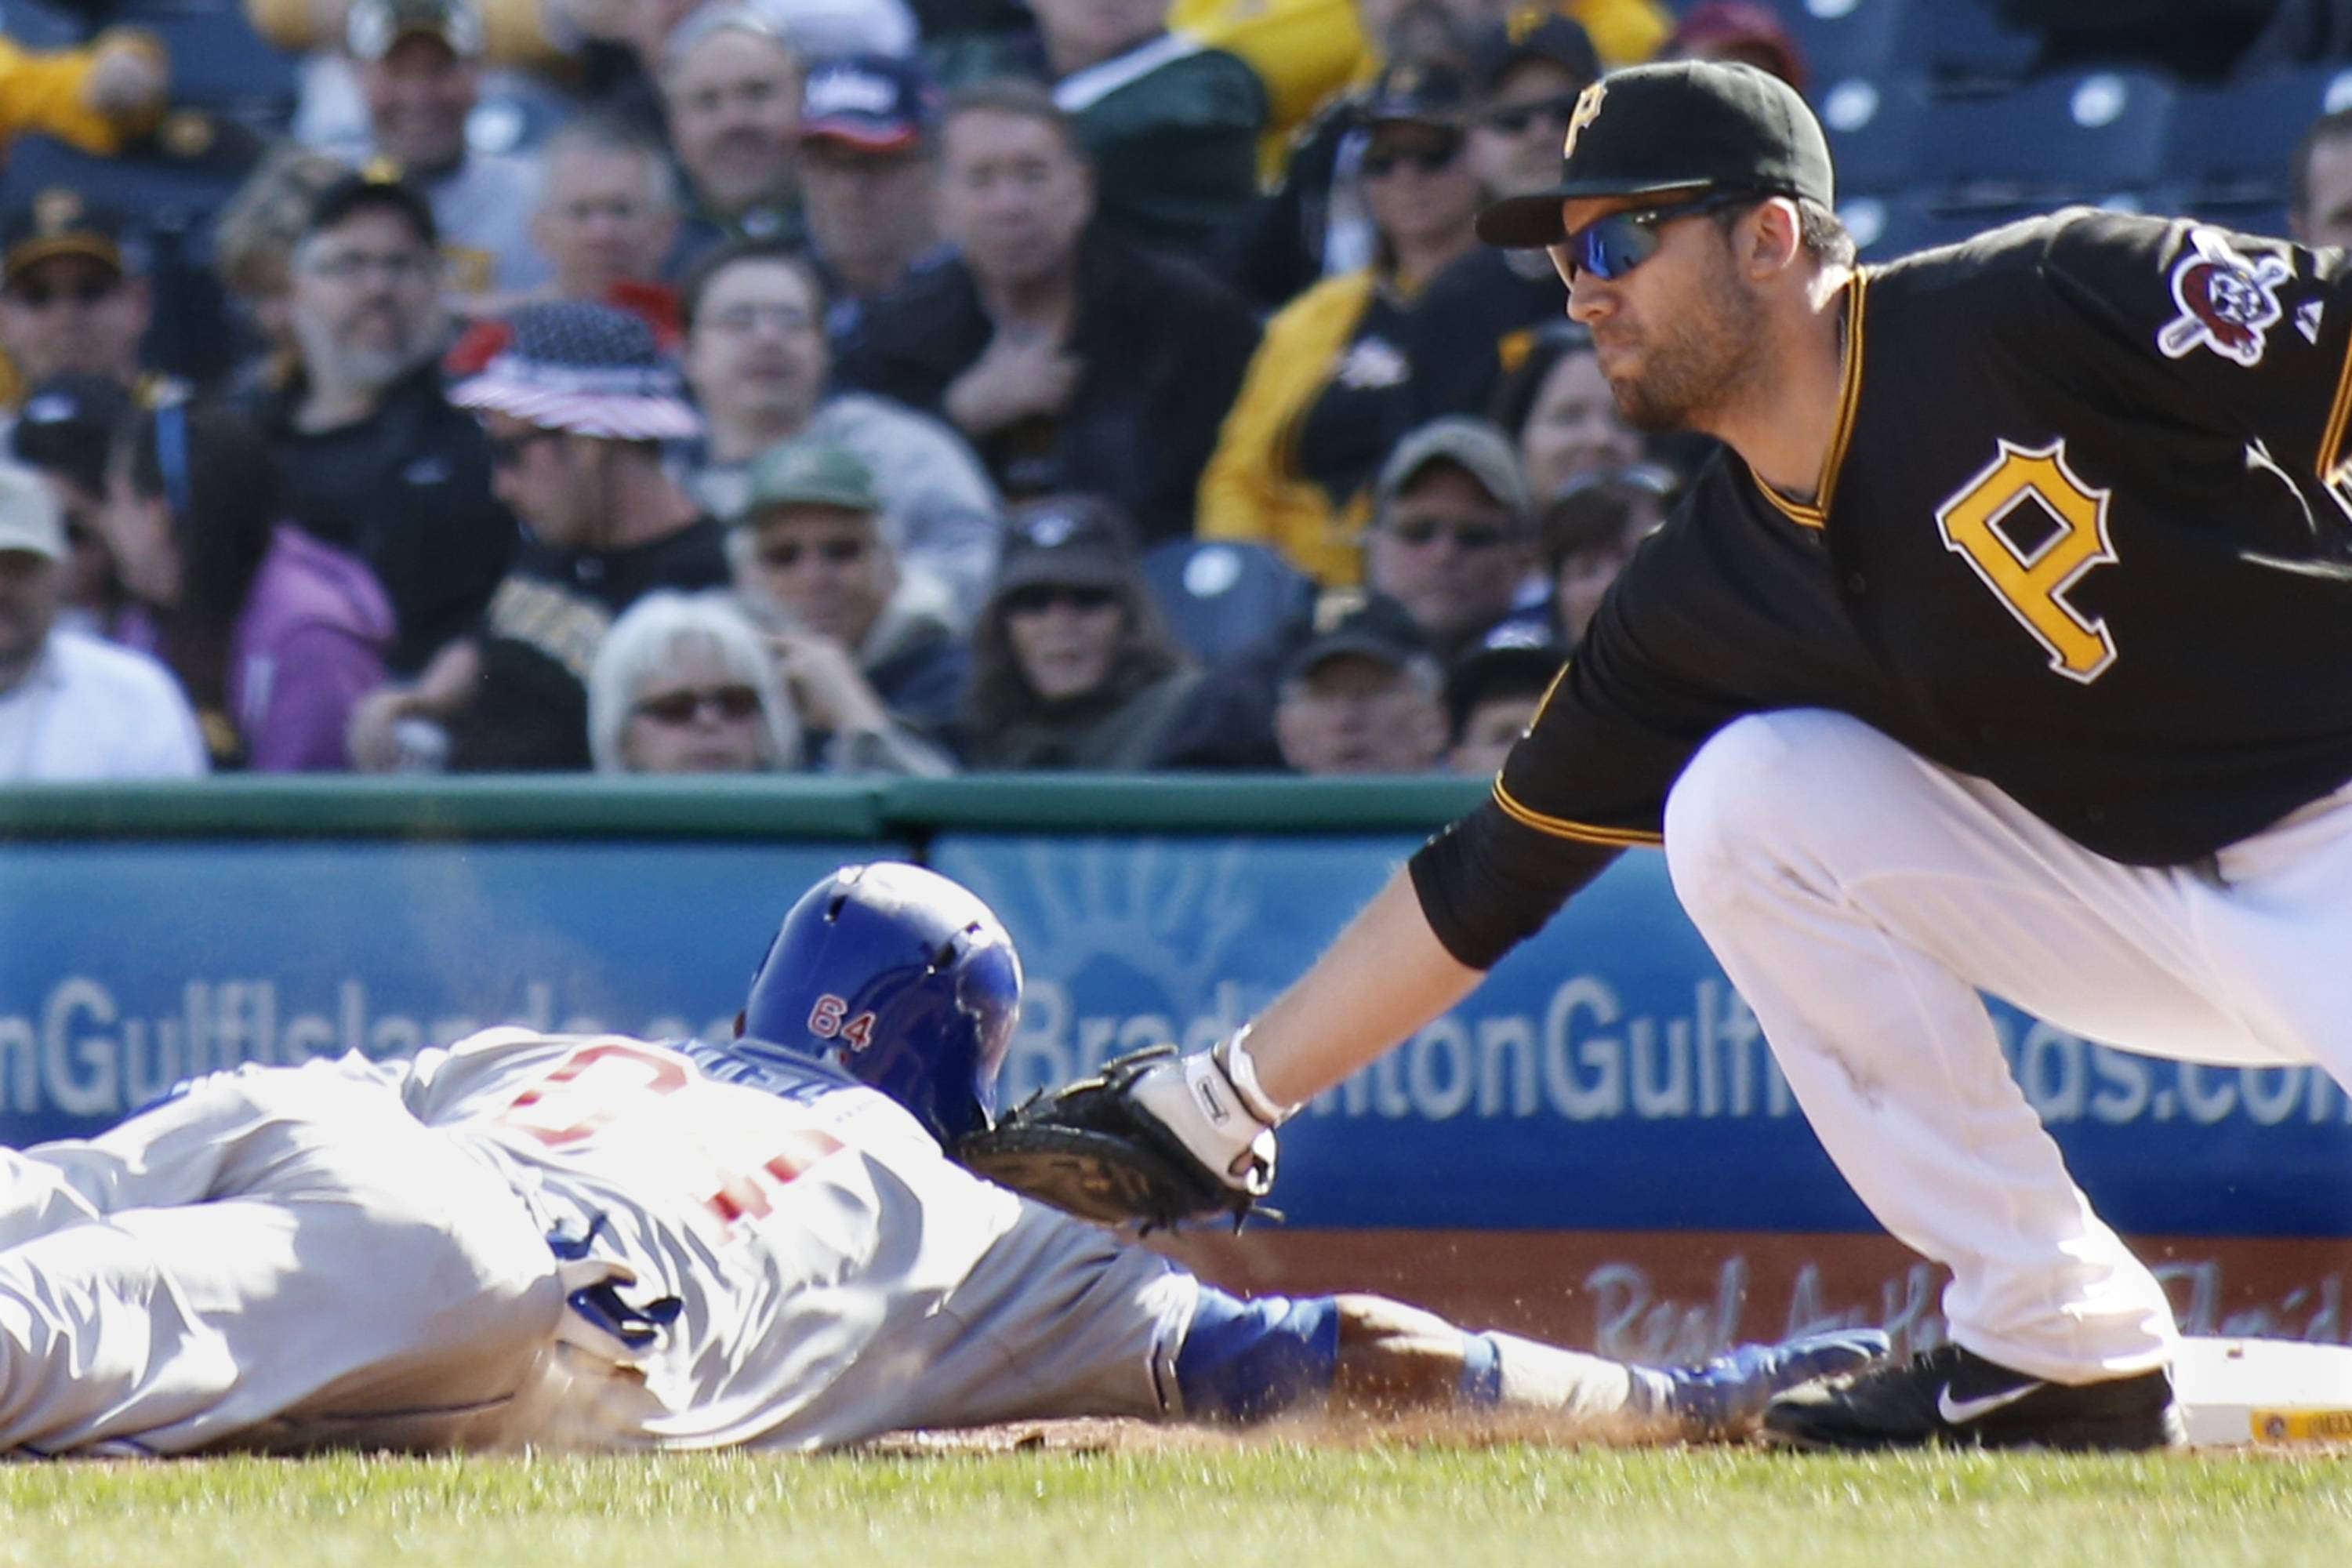 Pittsburgh Pirates first baseman Travis Ishikawa, right, reaches to tag Chicago Cubs Emilio Bonifacio as he dives back to first on a pickoff attempt in the tenth inning the opening day baseball game on Monday, March 31, 2014, in Pittsburgh. The Pirates won 1-0 in ten innings. Bonifacio was initially called safe by the first base umpire, but the call was overturned on a review requested by manager Clint Hurdle and Bonifacio was ruled out.